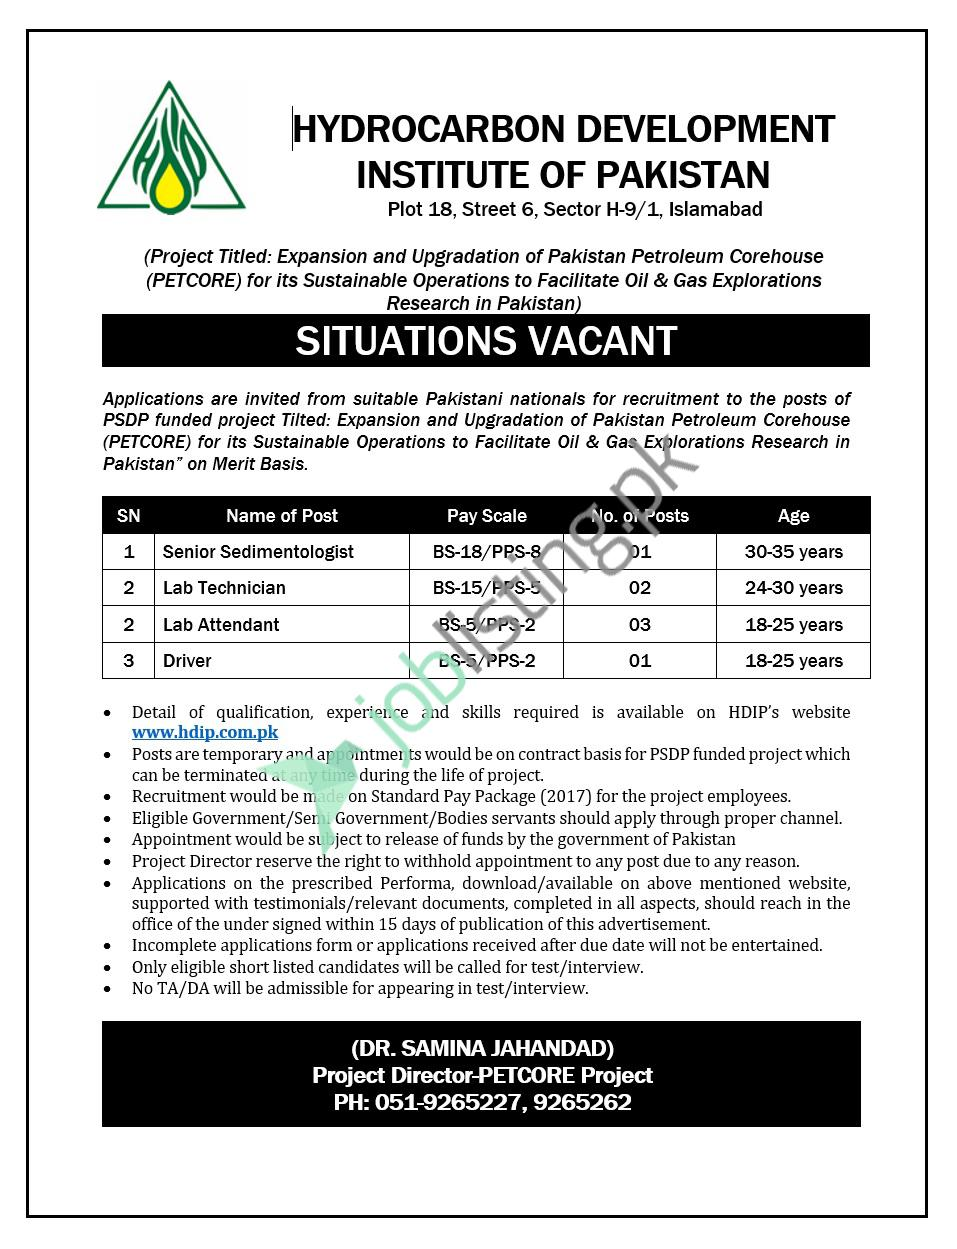 Ministry of Energy Pakistan HDIP Hydrocarbon Development Institute Jobs 2021